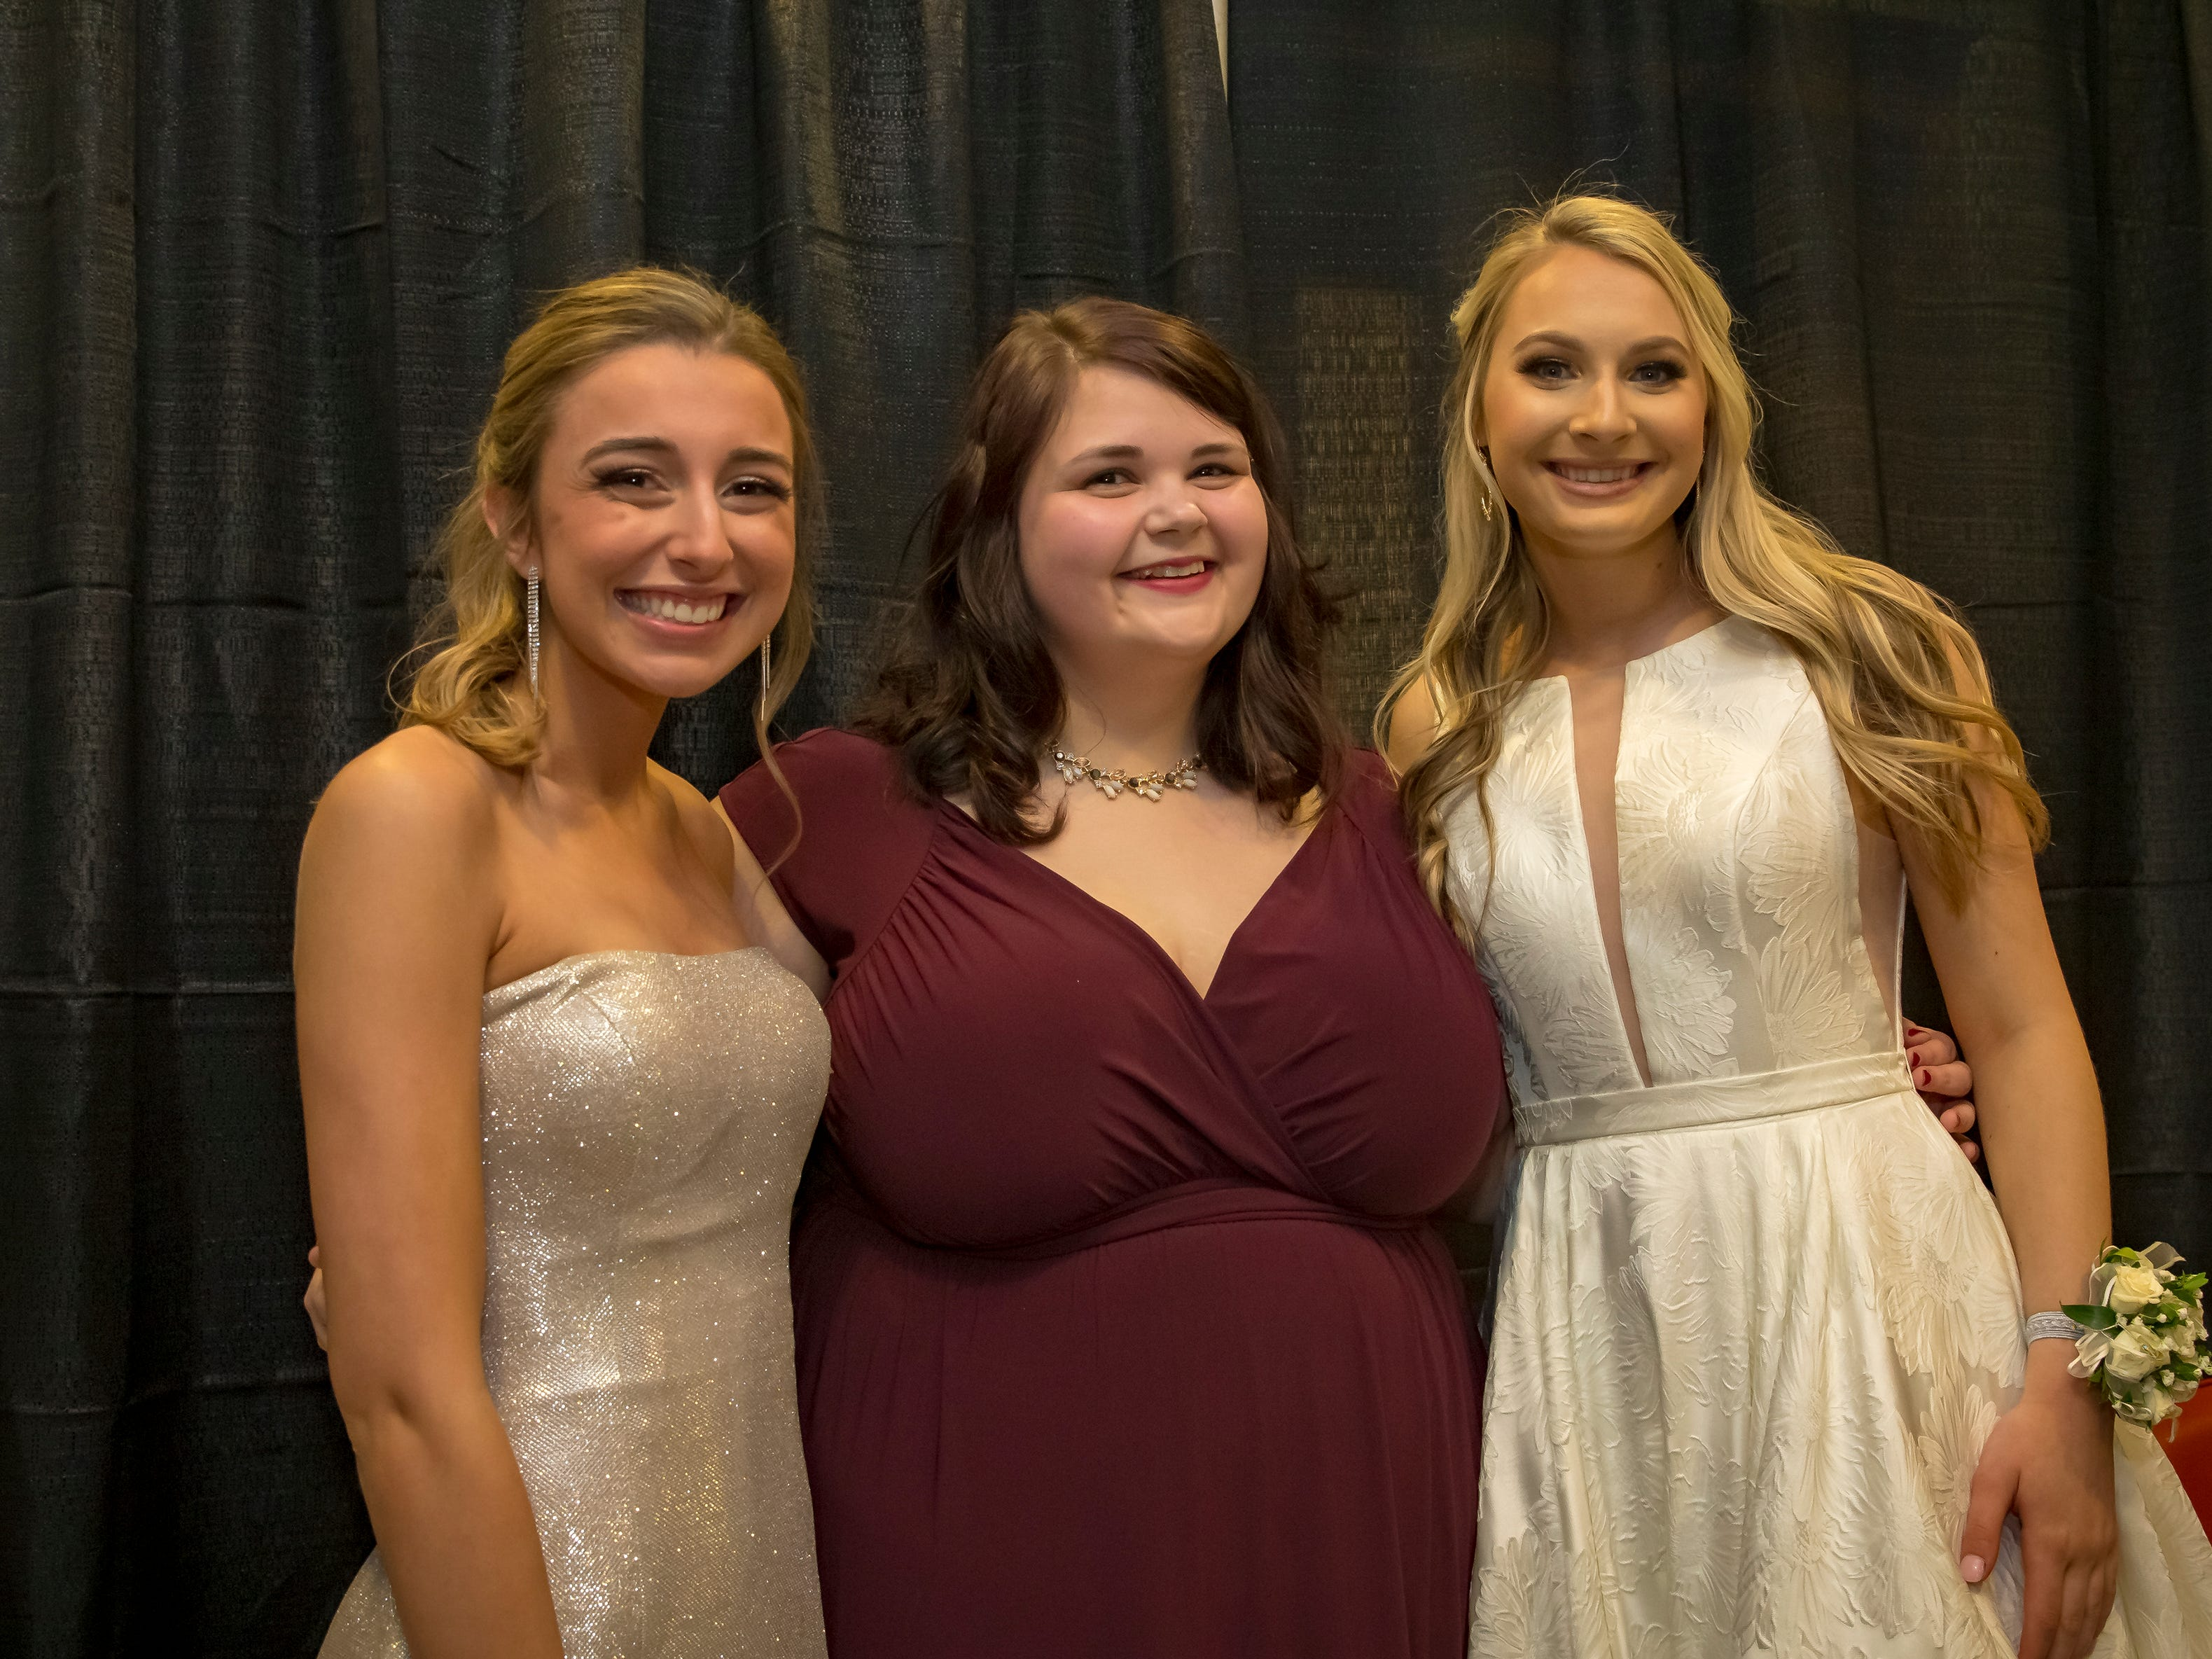 Oakland High School held its prom at Lane Agri-Park in Murfreesboro on Saturday, April 27, 2019